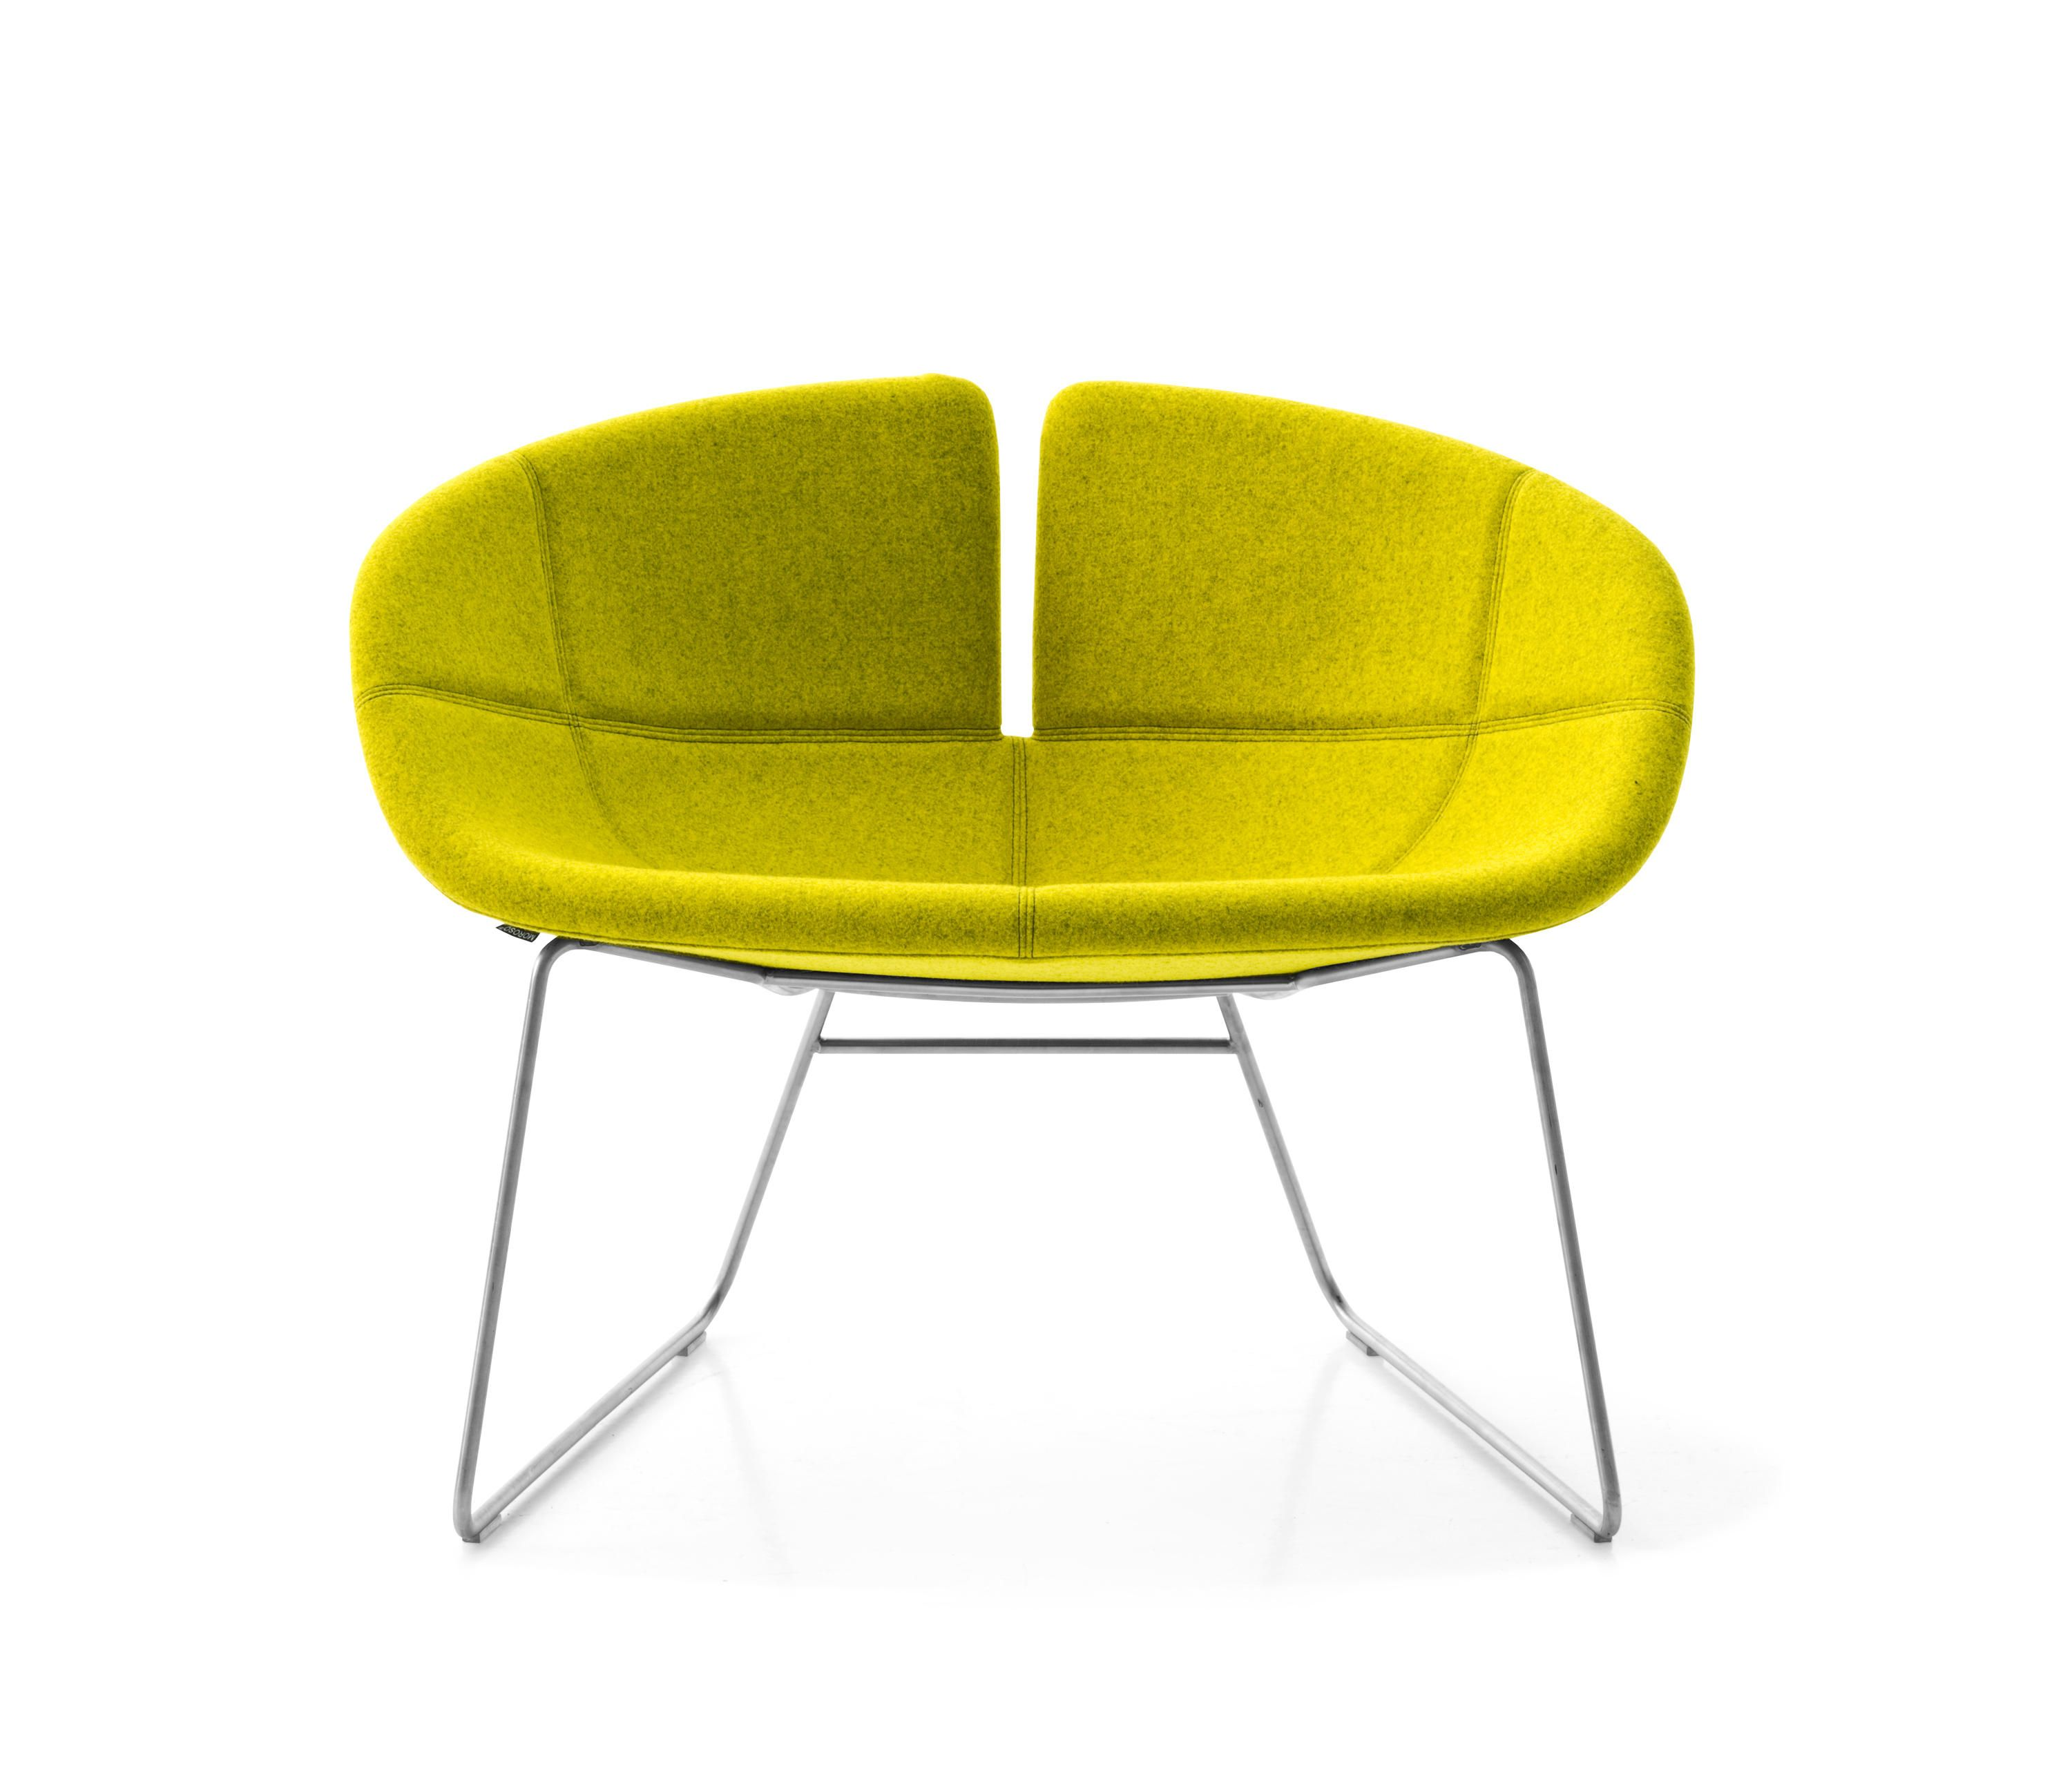 FJORD Designer Lounge chairs from Moroso ✓ all information